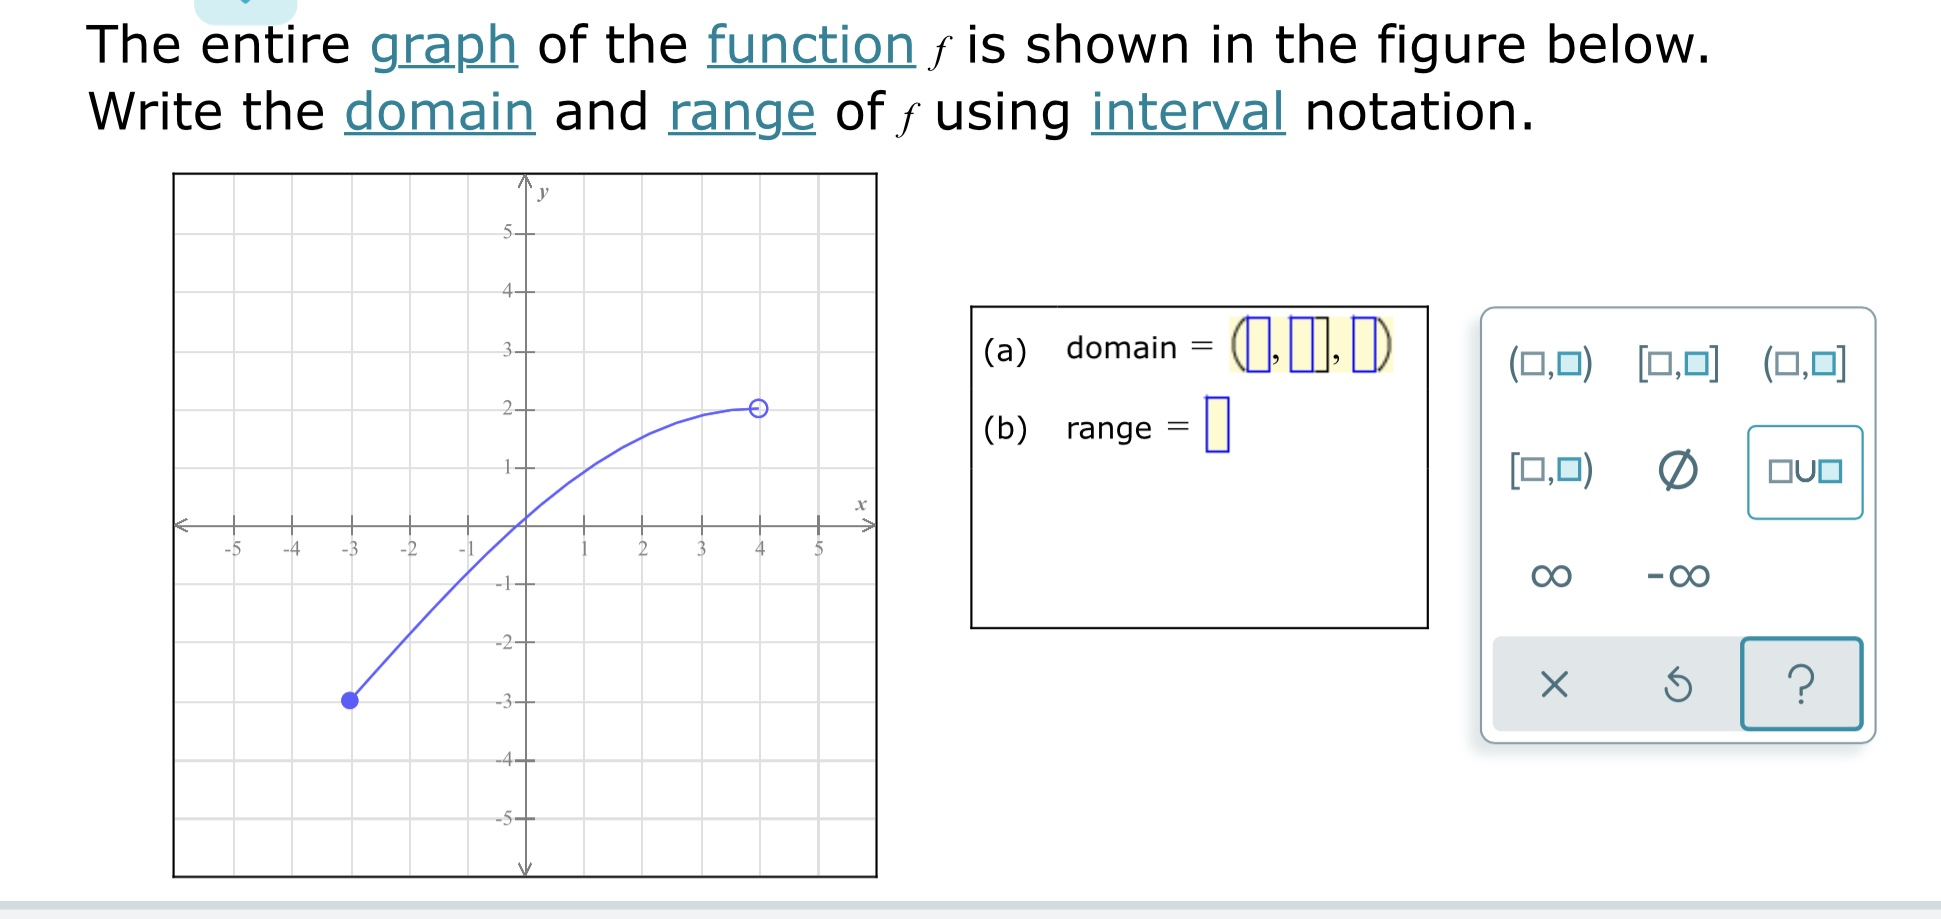 The entire graph of the function s is shown in the figure below. Write the domain and range of f using interval notation. CID (a) domain (0,0) [0,0) (0,0) 3- 2- (b) range [0,0) OUO -5 -4 00 -1- -2- -3- --5–